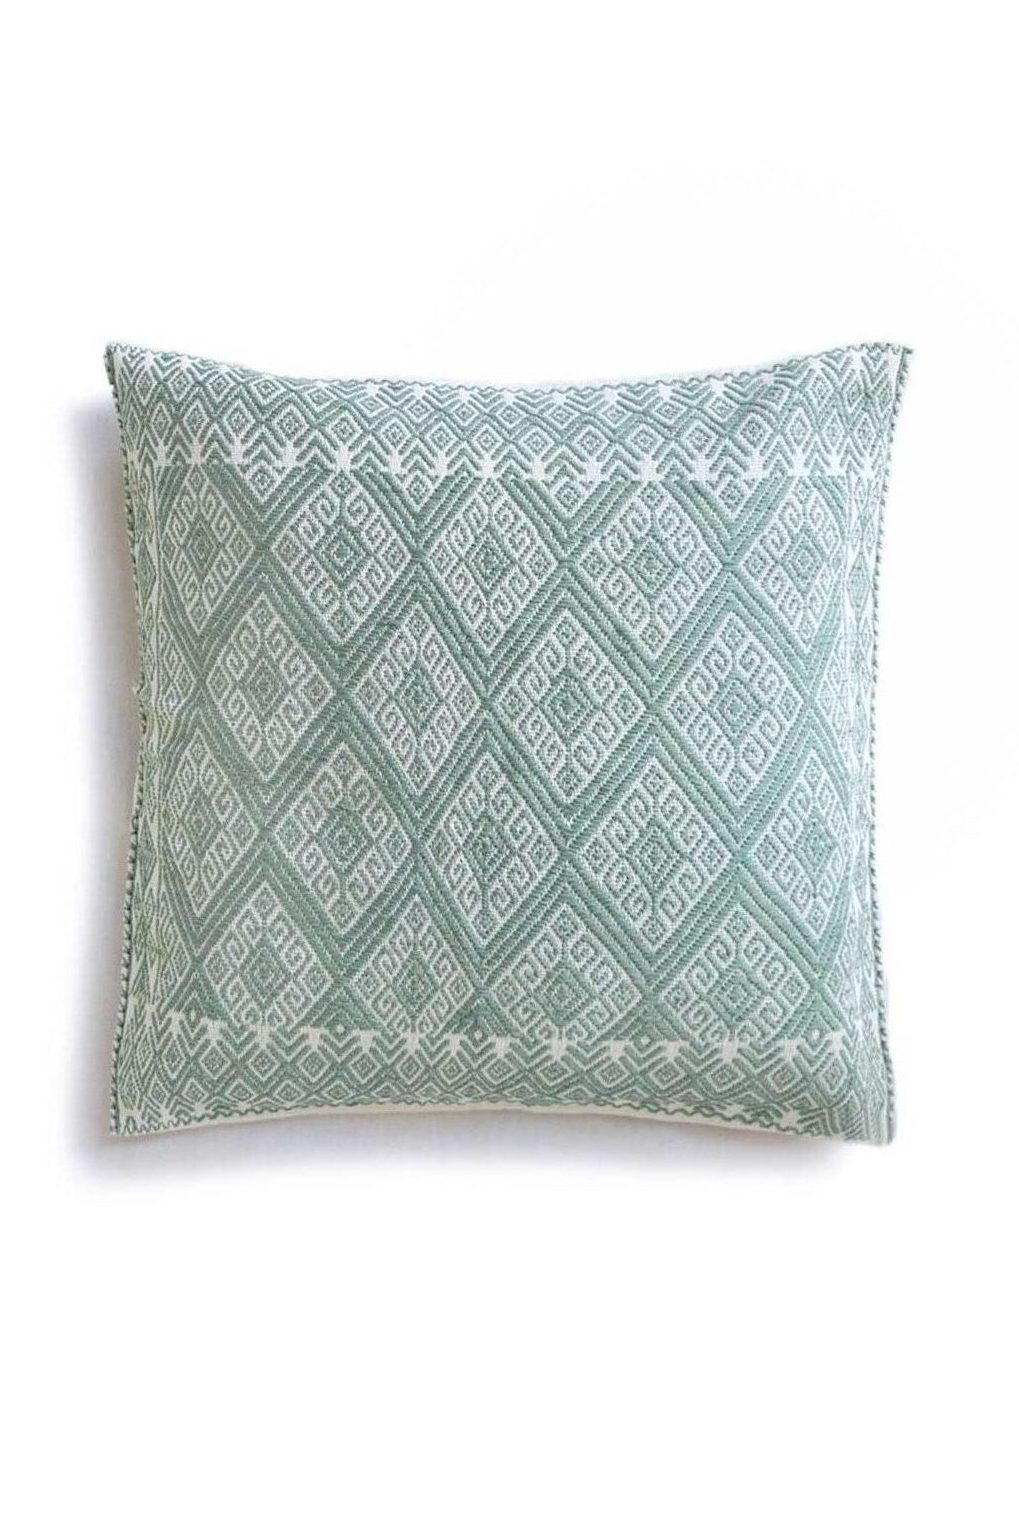 Mexican Mint San Andres Cushion - www.nidocollective.com #embroideredcushion #backstrapweaving #mexicancushion